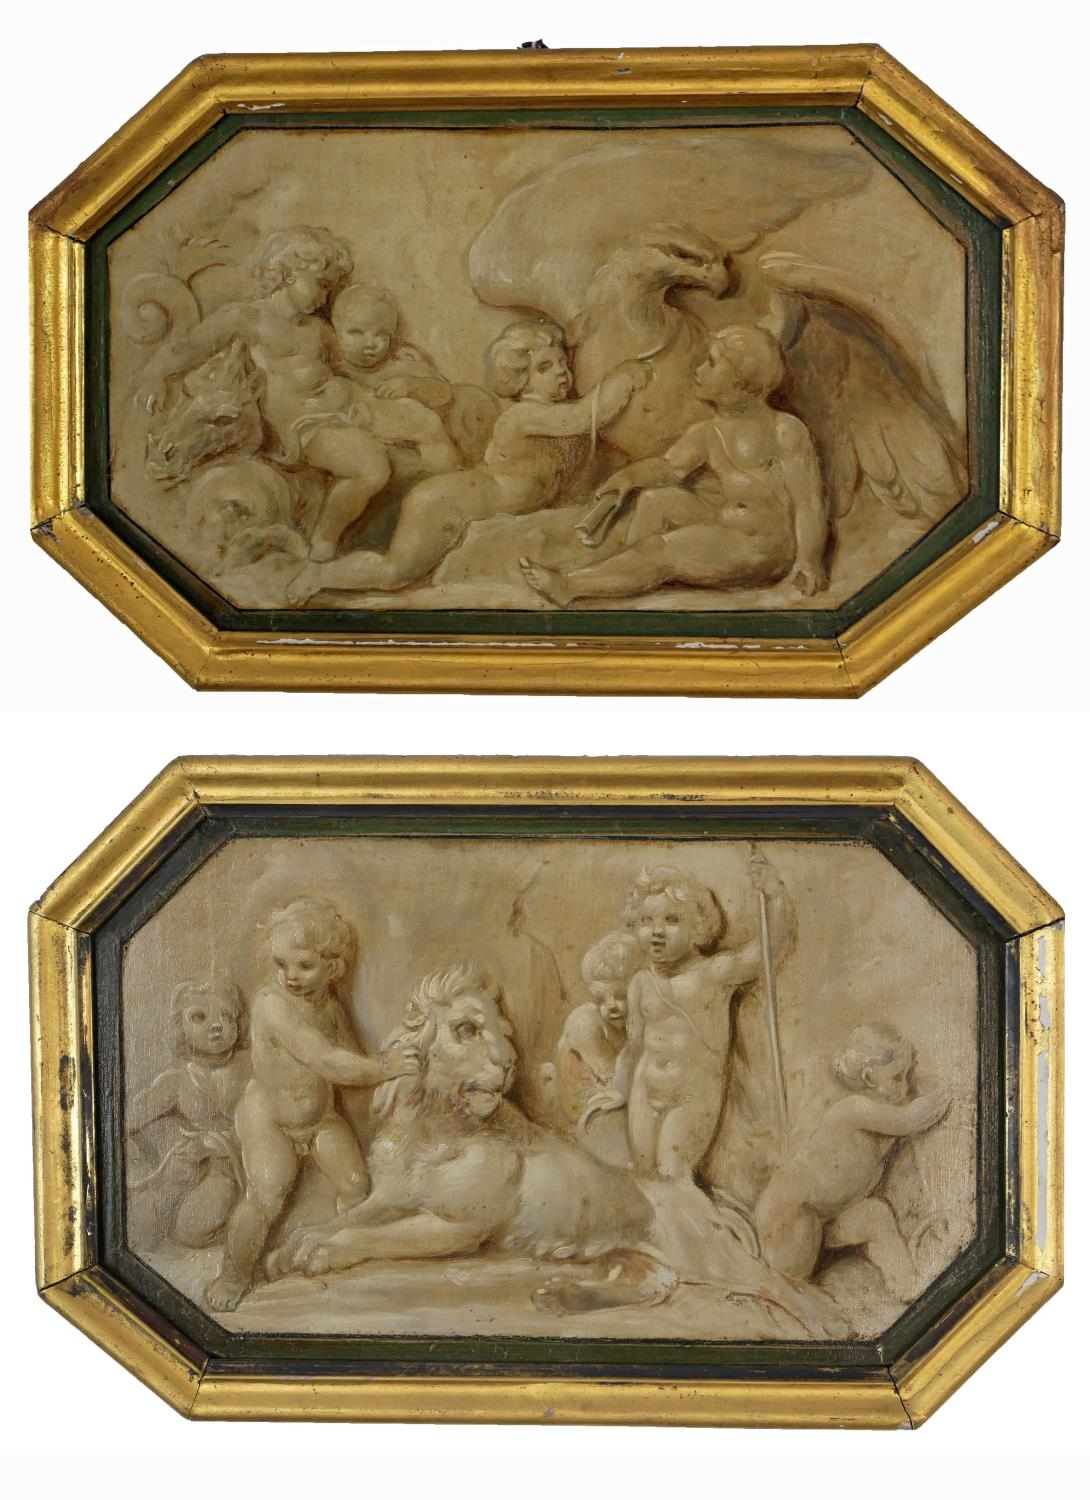 ATTRIBUTED TO JACOB DE WIT, AMSTERDAM, 1695 - 1754, A PAIR OF 18TH CENTURY OILS ON PANEL Putti